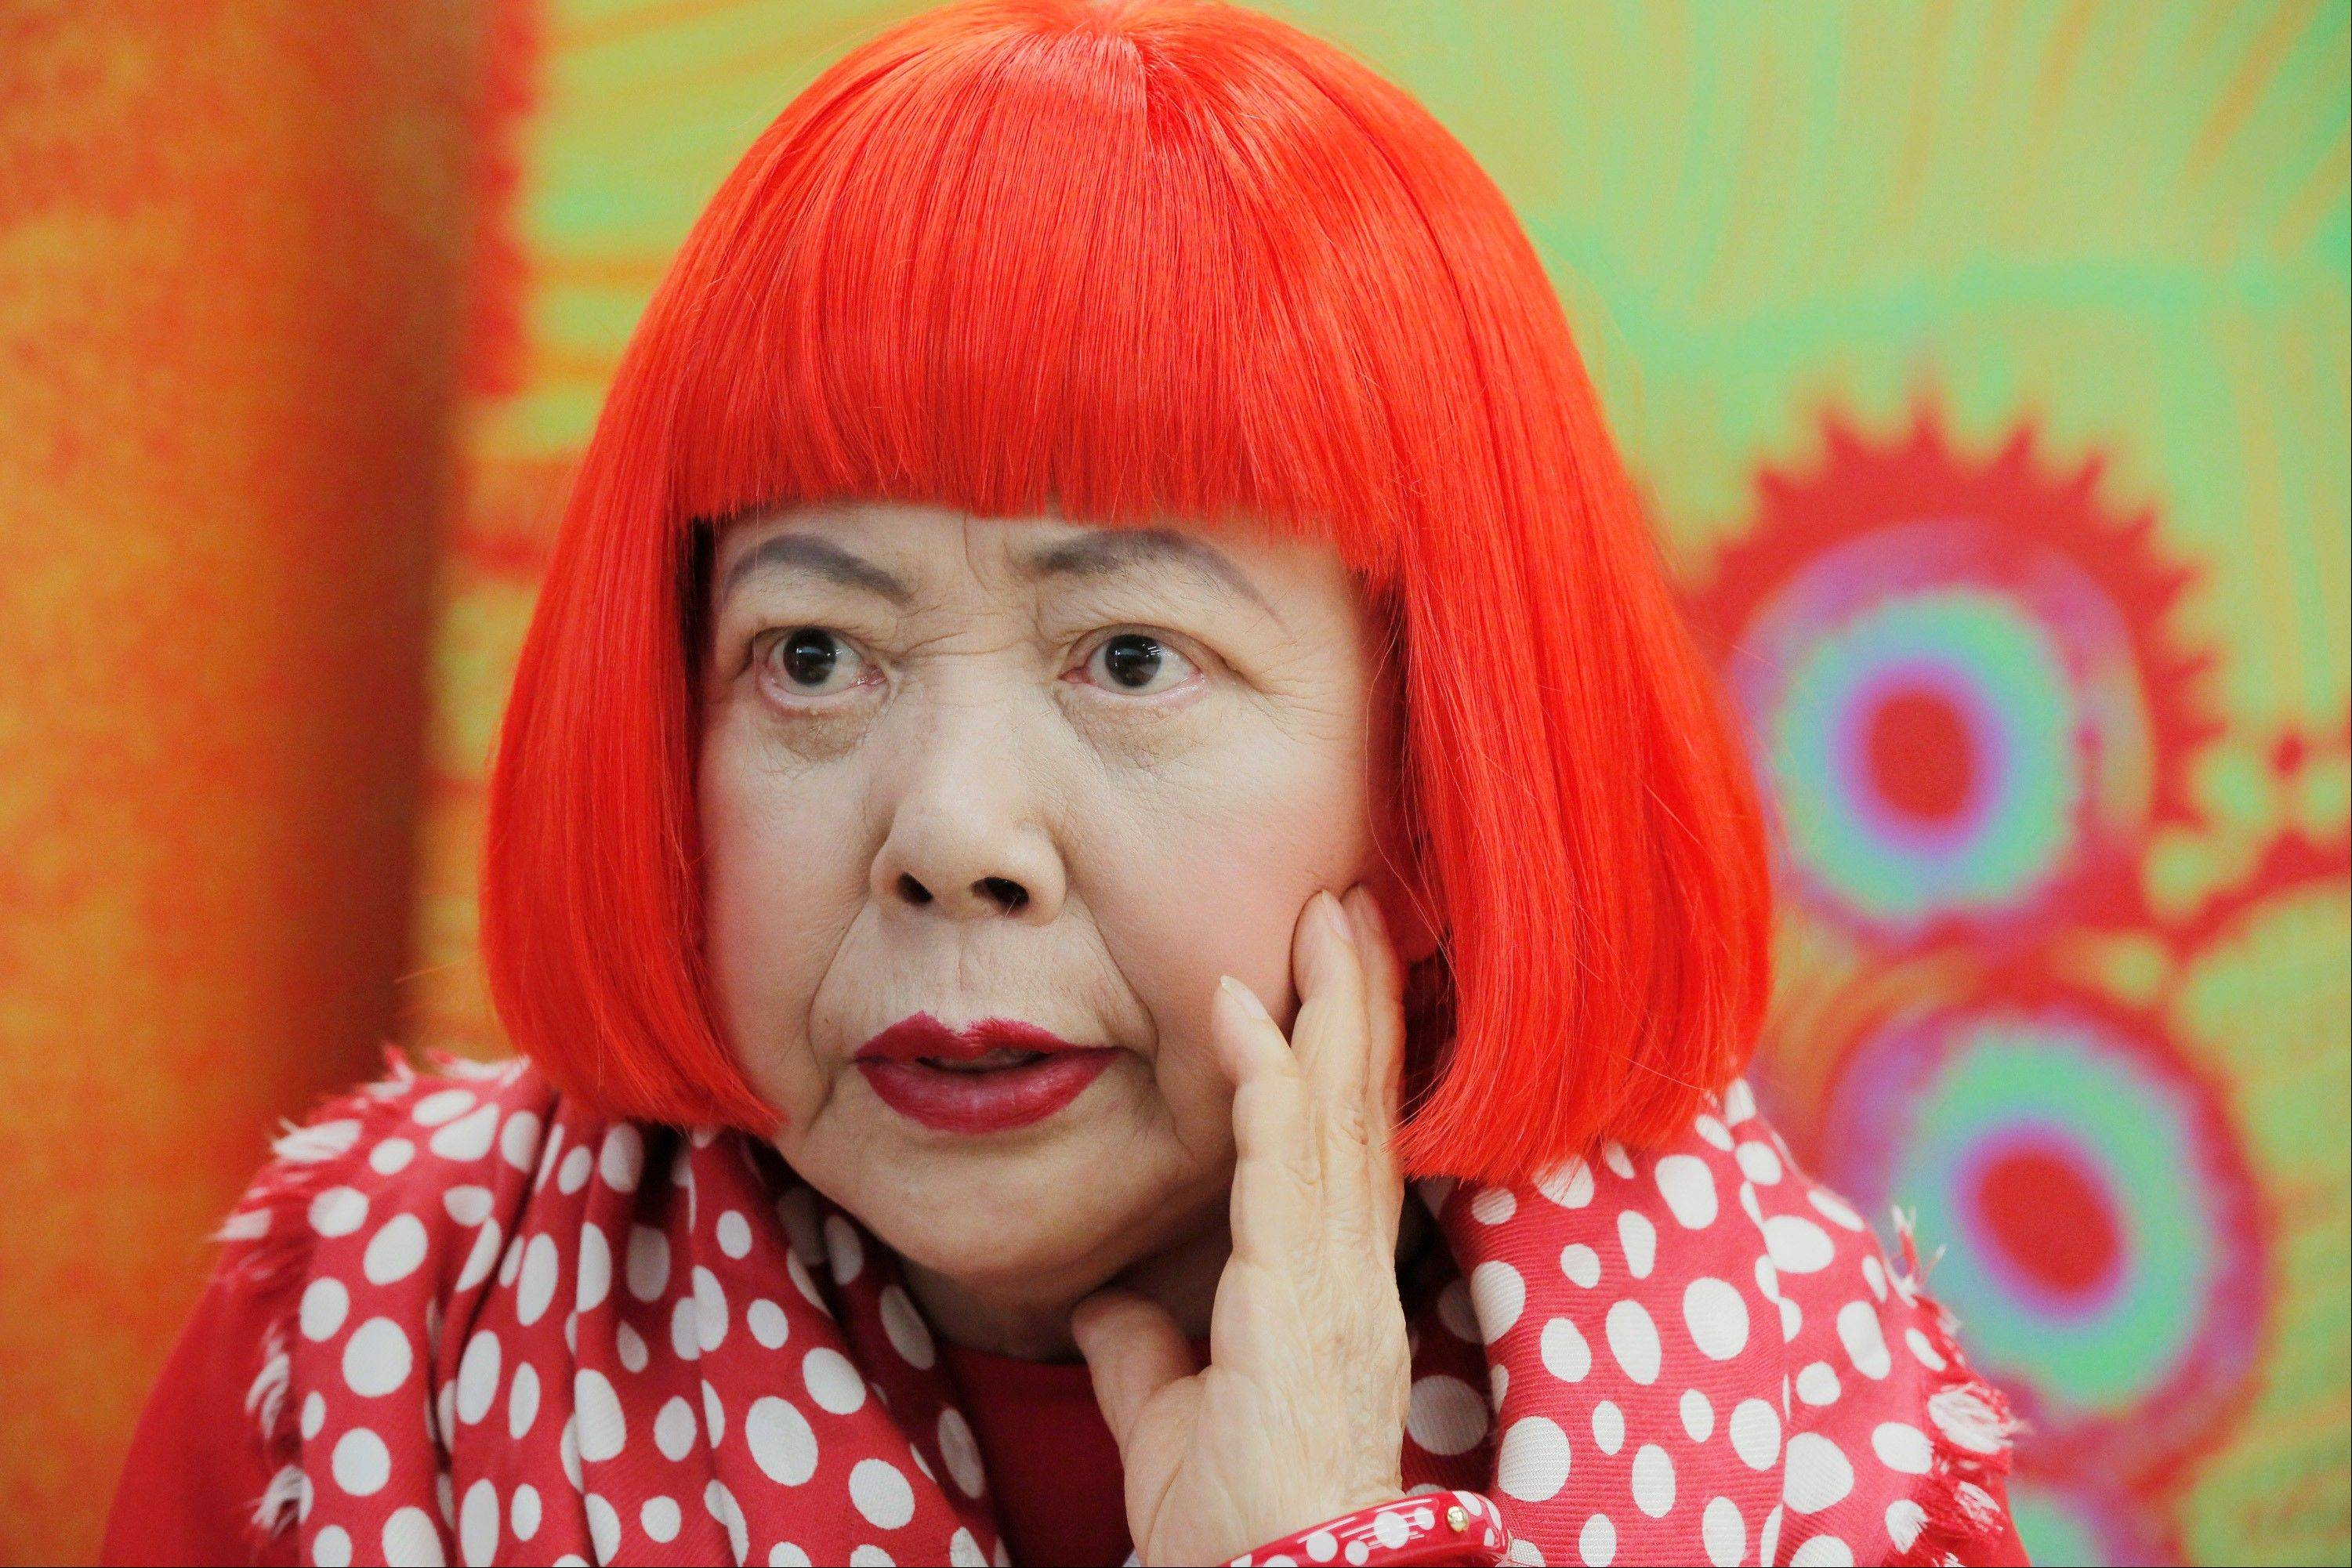 Japanese avant-garde artist Yayoi Kusama, wearing a bright red wig and a Louis Vuitton polka dot scarf, speaks during an interview at her studio in Tokyo on Aug. 1. Kusama's signature splash of dots has now arrived in the realm of fashion in a new collection from French luxury brand Louis Vuitton -- bags, sunglasses, shoes and coats. The latest Kusama collection is showcased at its boutiques around the world, including New York, Paris, Tokyo and Singapore, sometimes with replica dolls of Kusama.